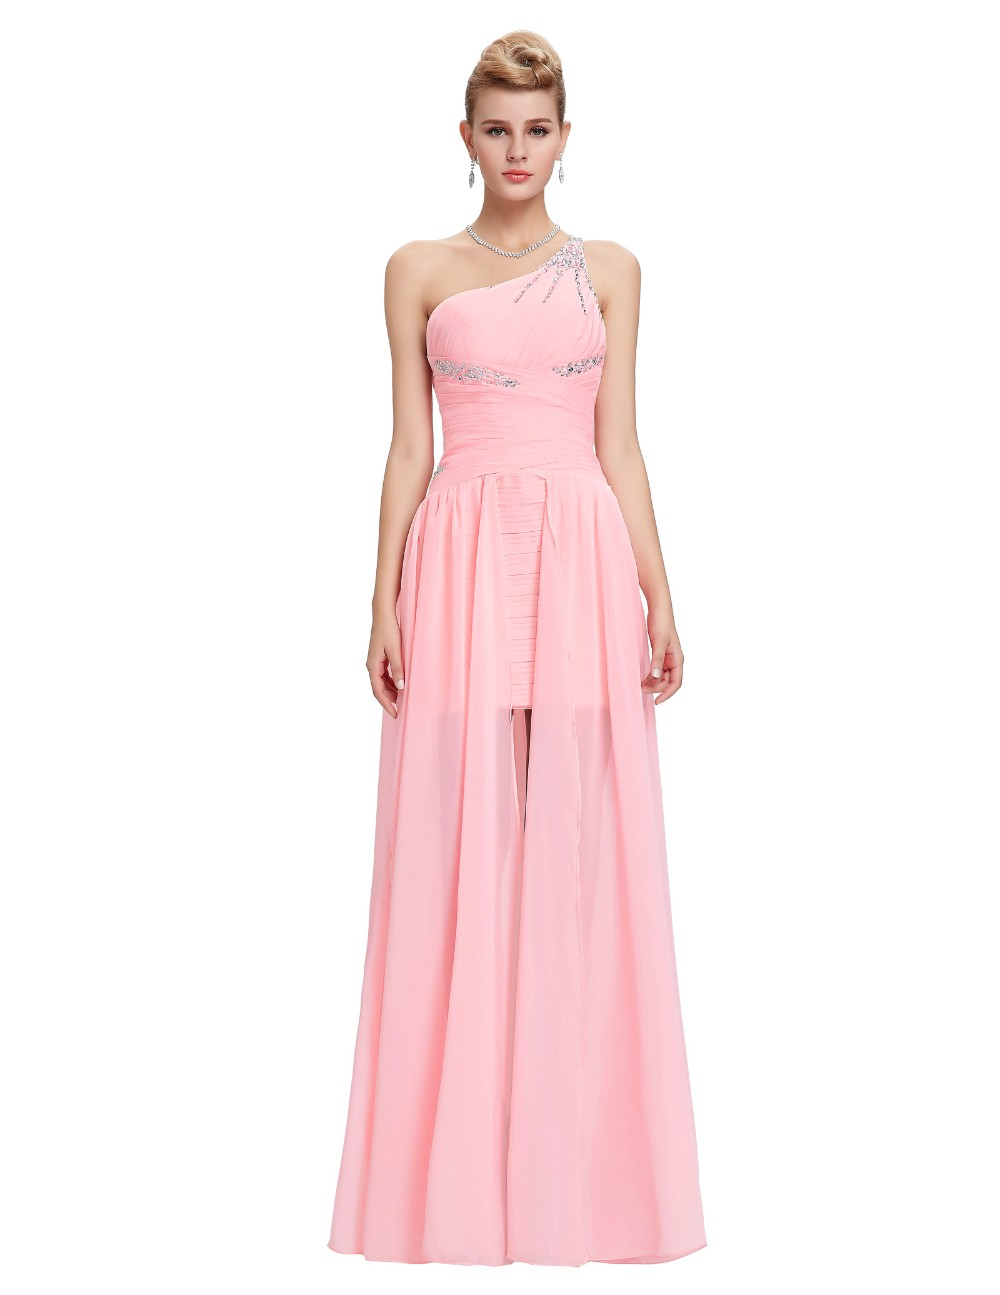 Light Pink Bridesmaid Dresses Grace Karin Beaded Chiffon One Shoulder Formal Gowns Short Front Long Back Wedding Party Dresses 5